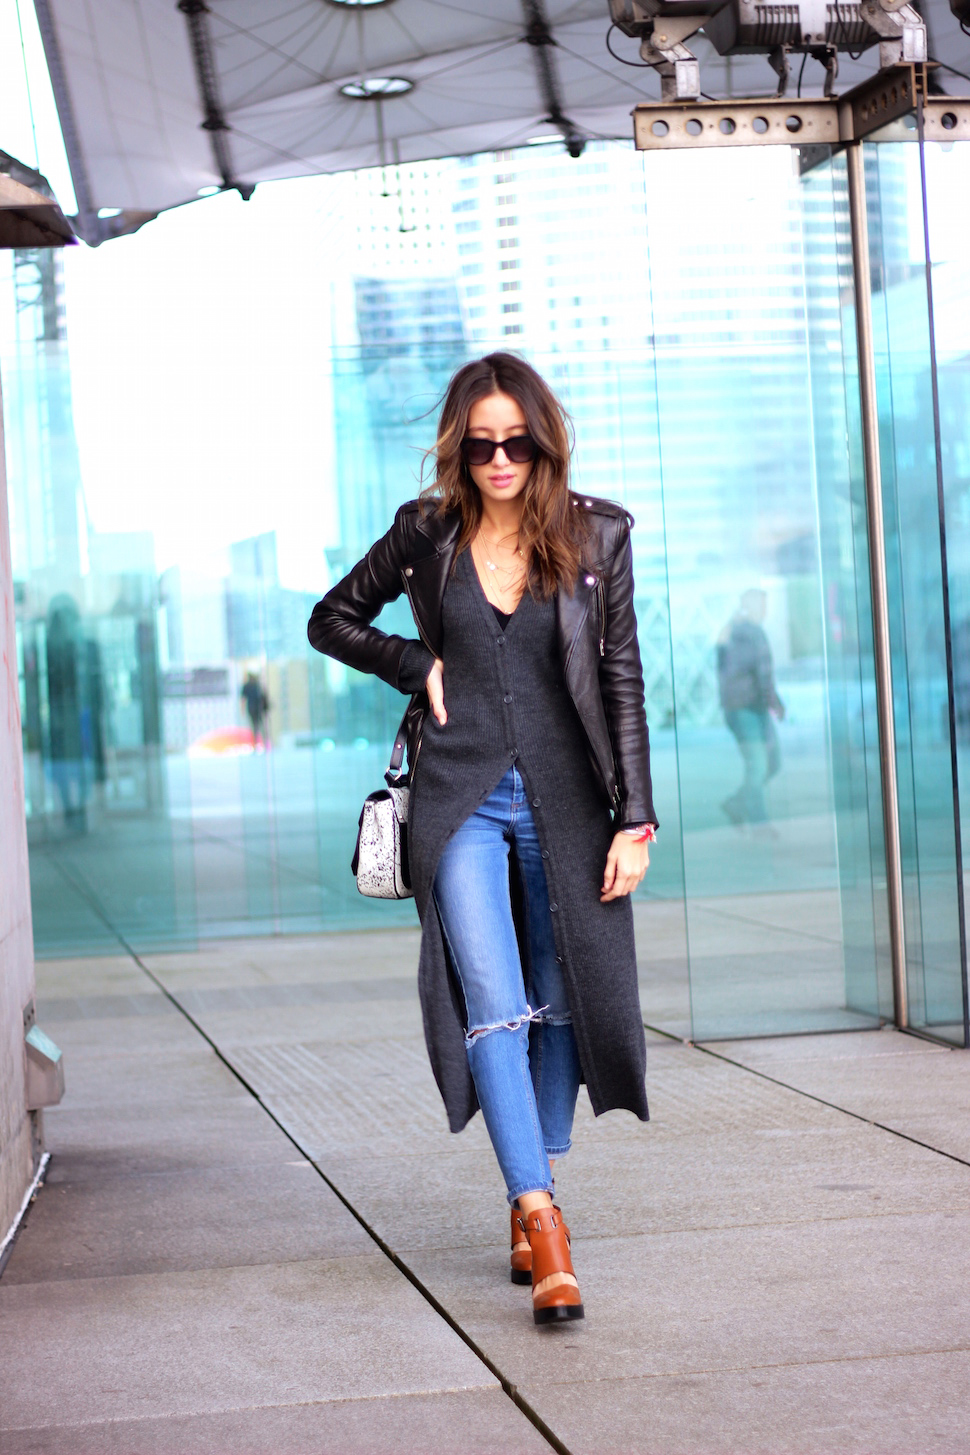 Long Cardigan Trend: Alexandra Guerain is wearing a long dark grey vintage cardigan